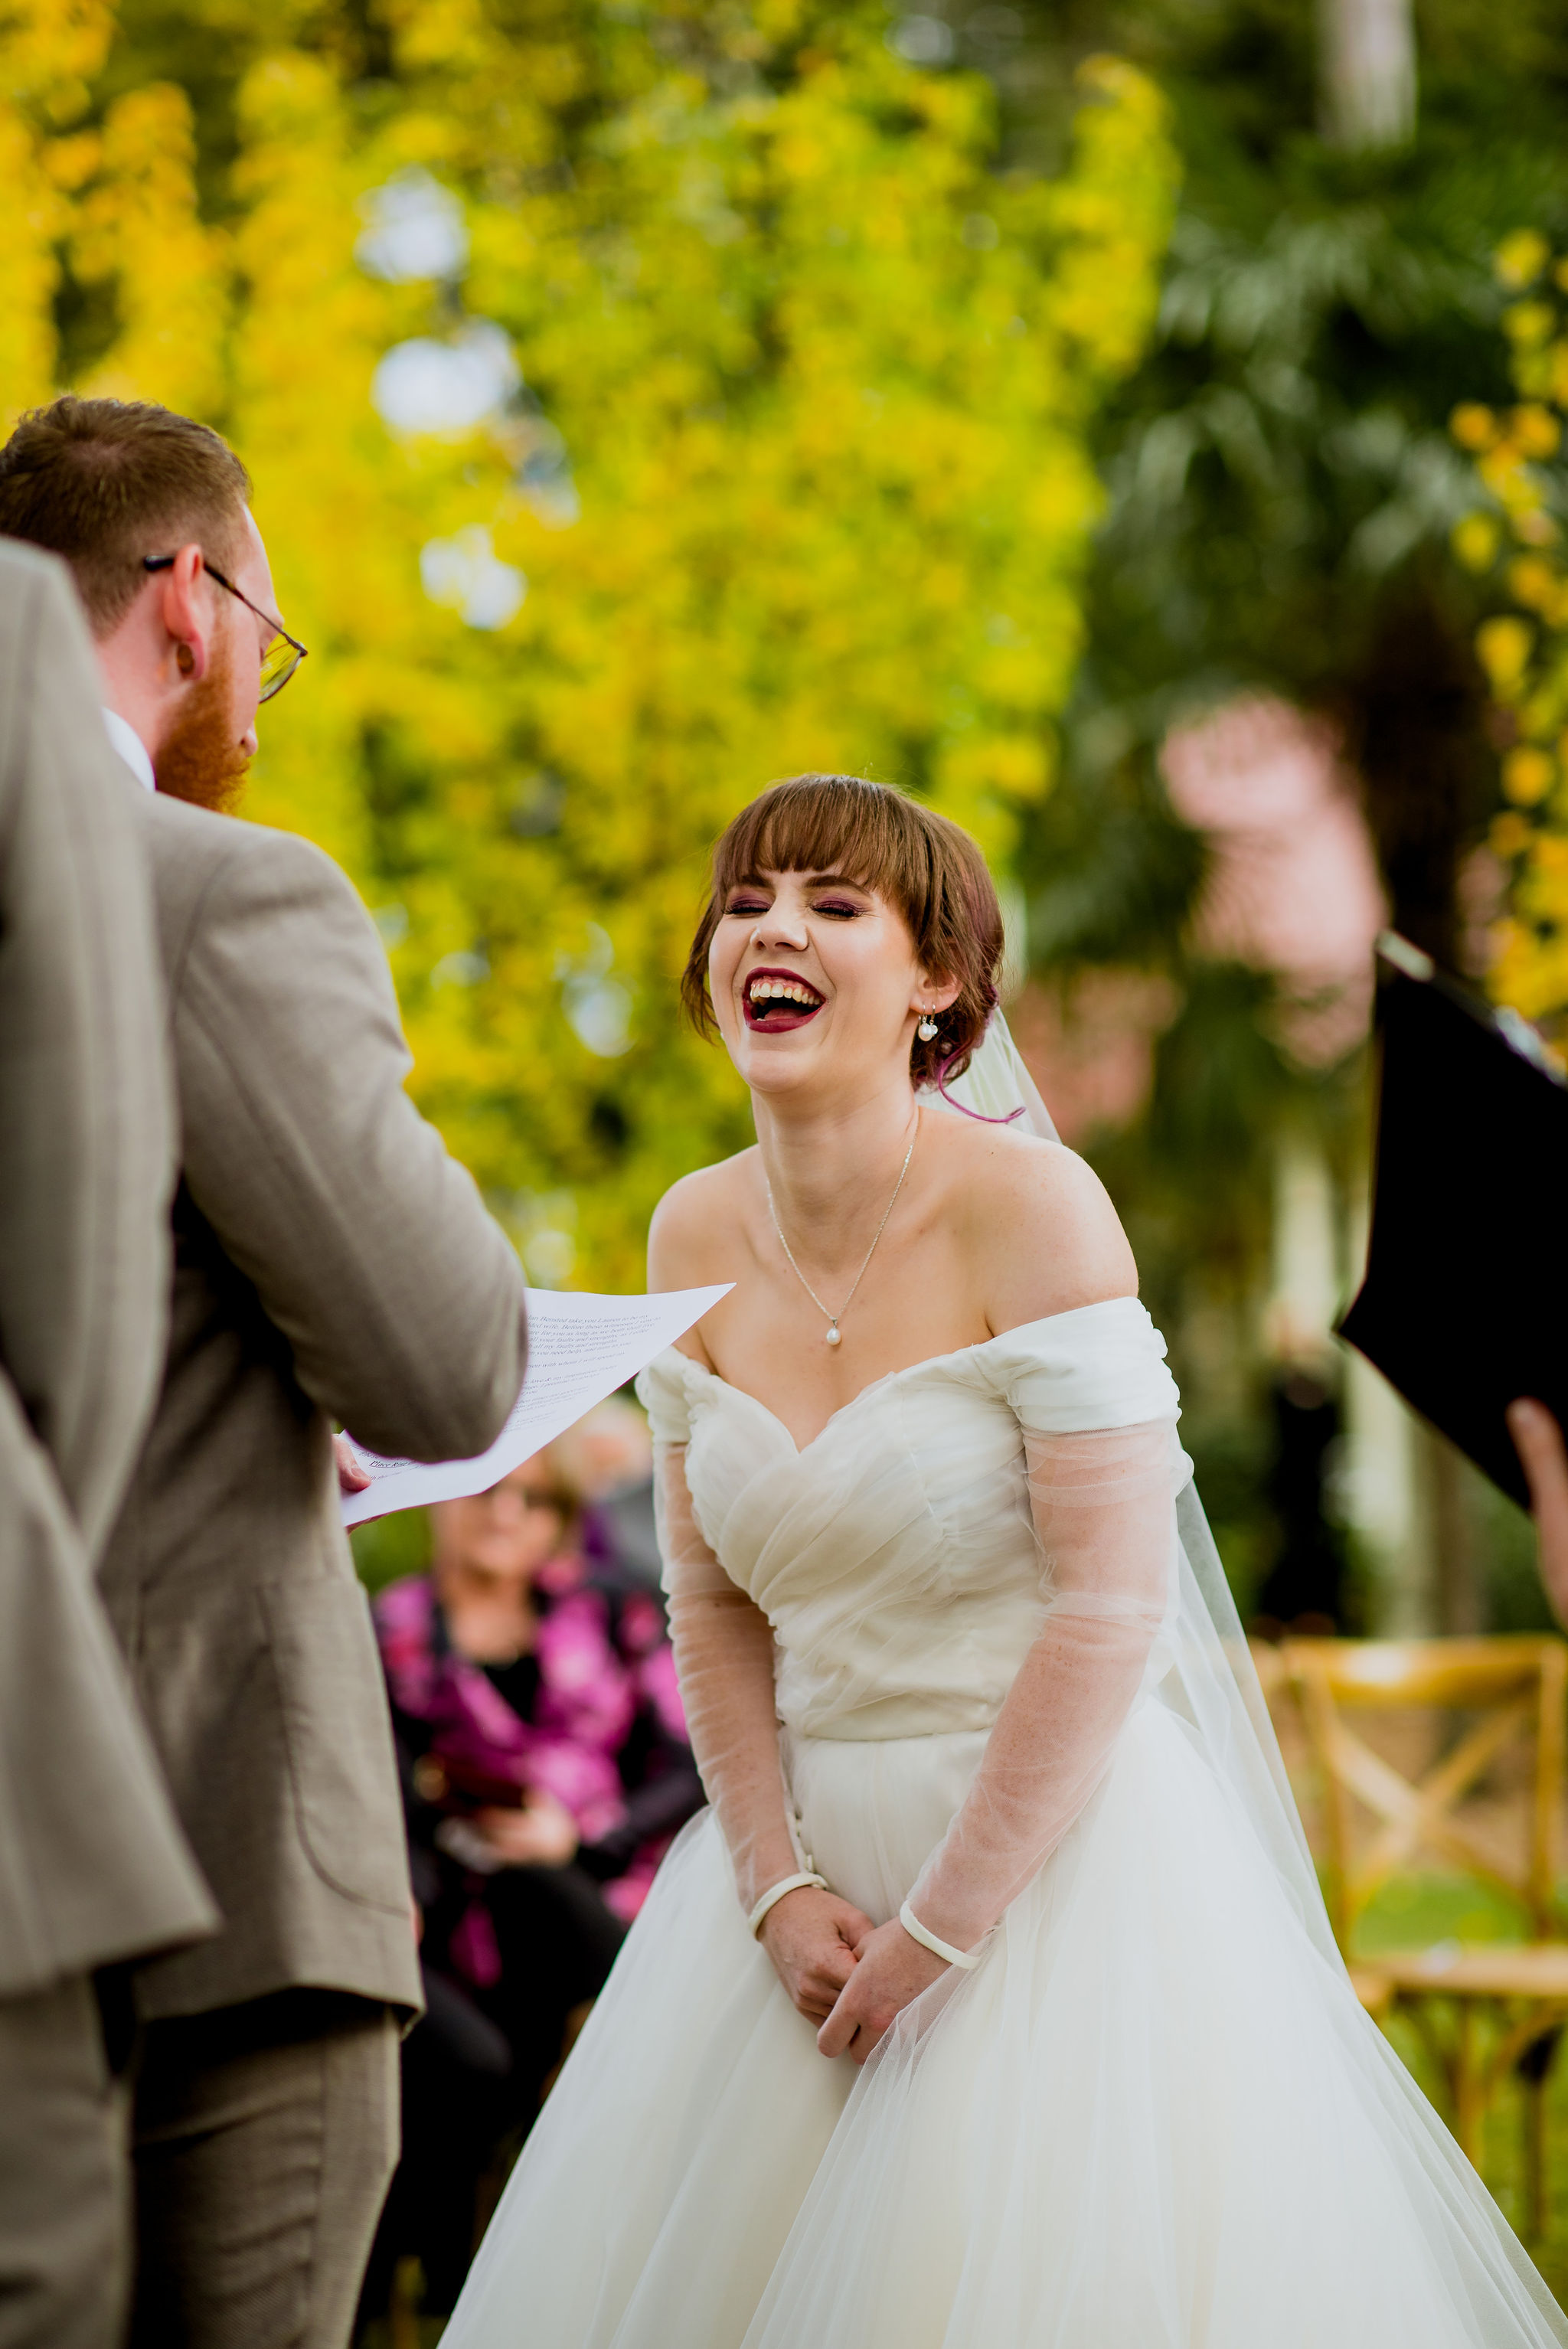 Bride laughing during groom's wedding vows